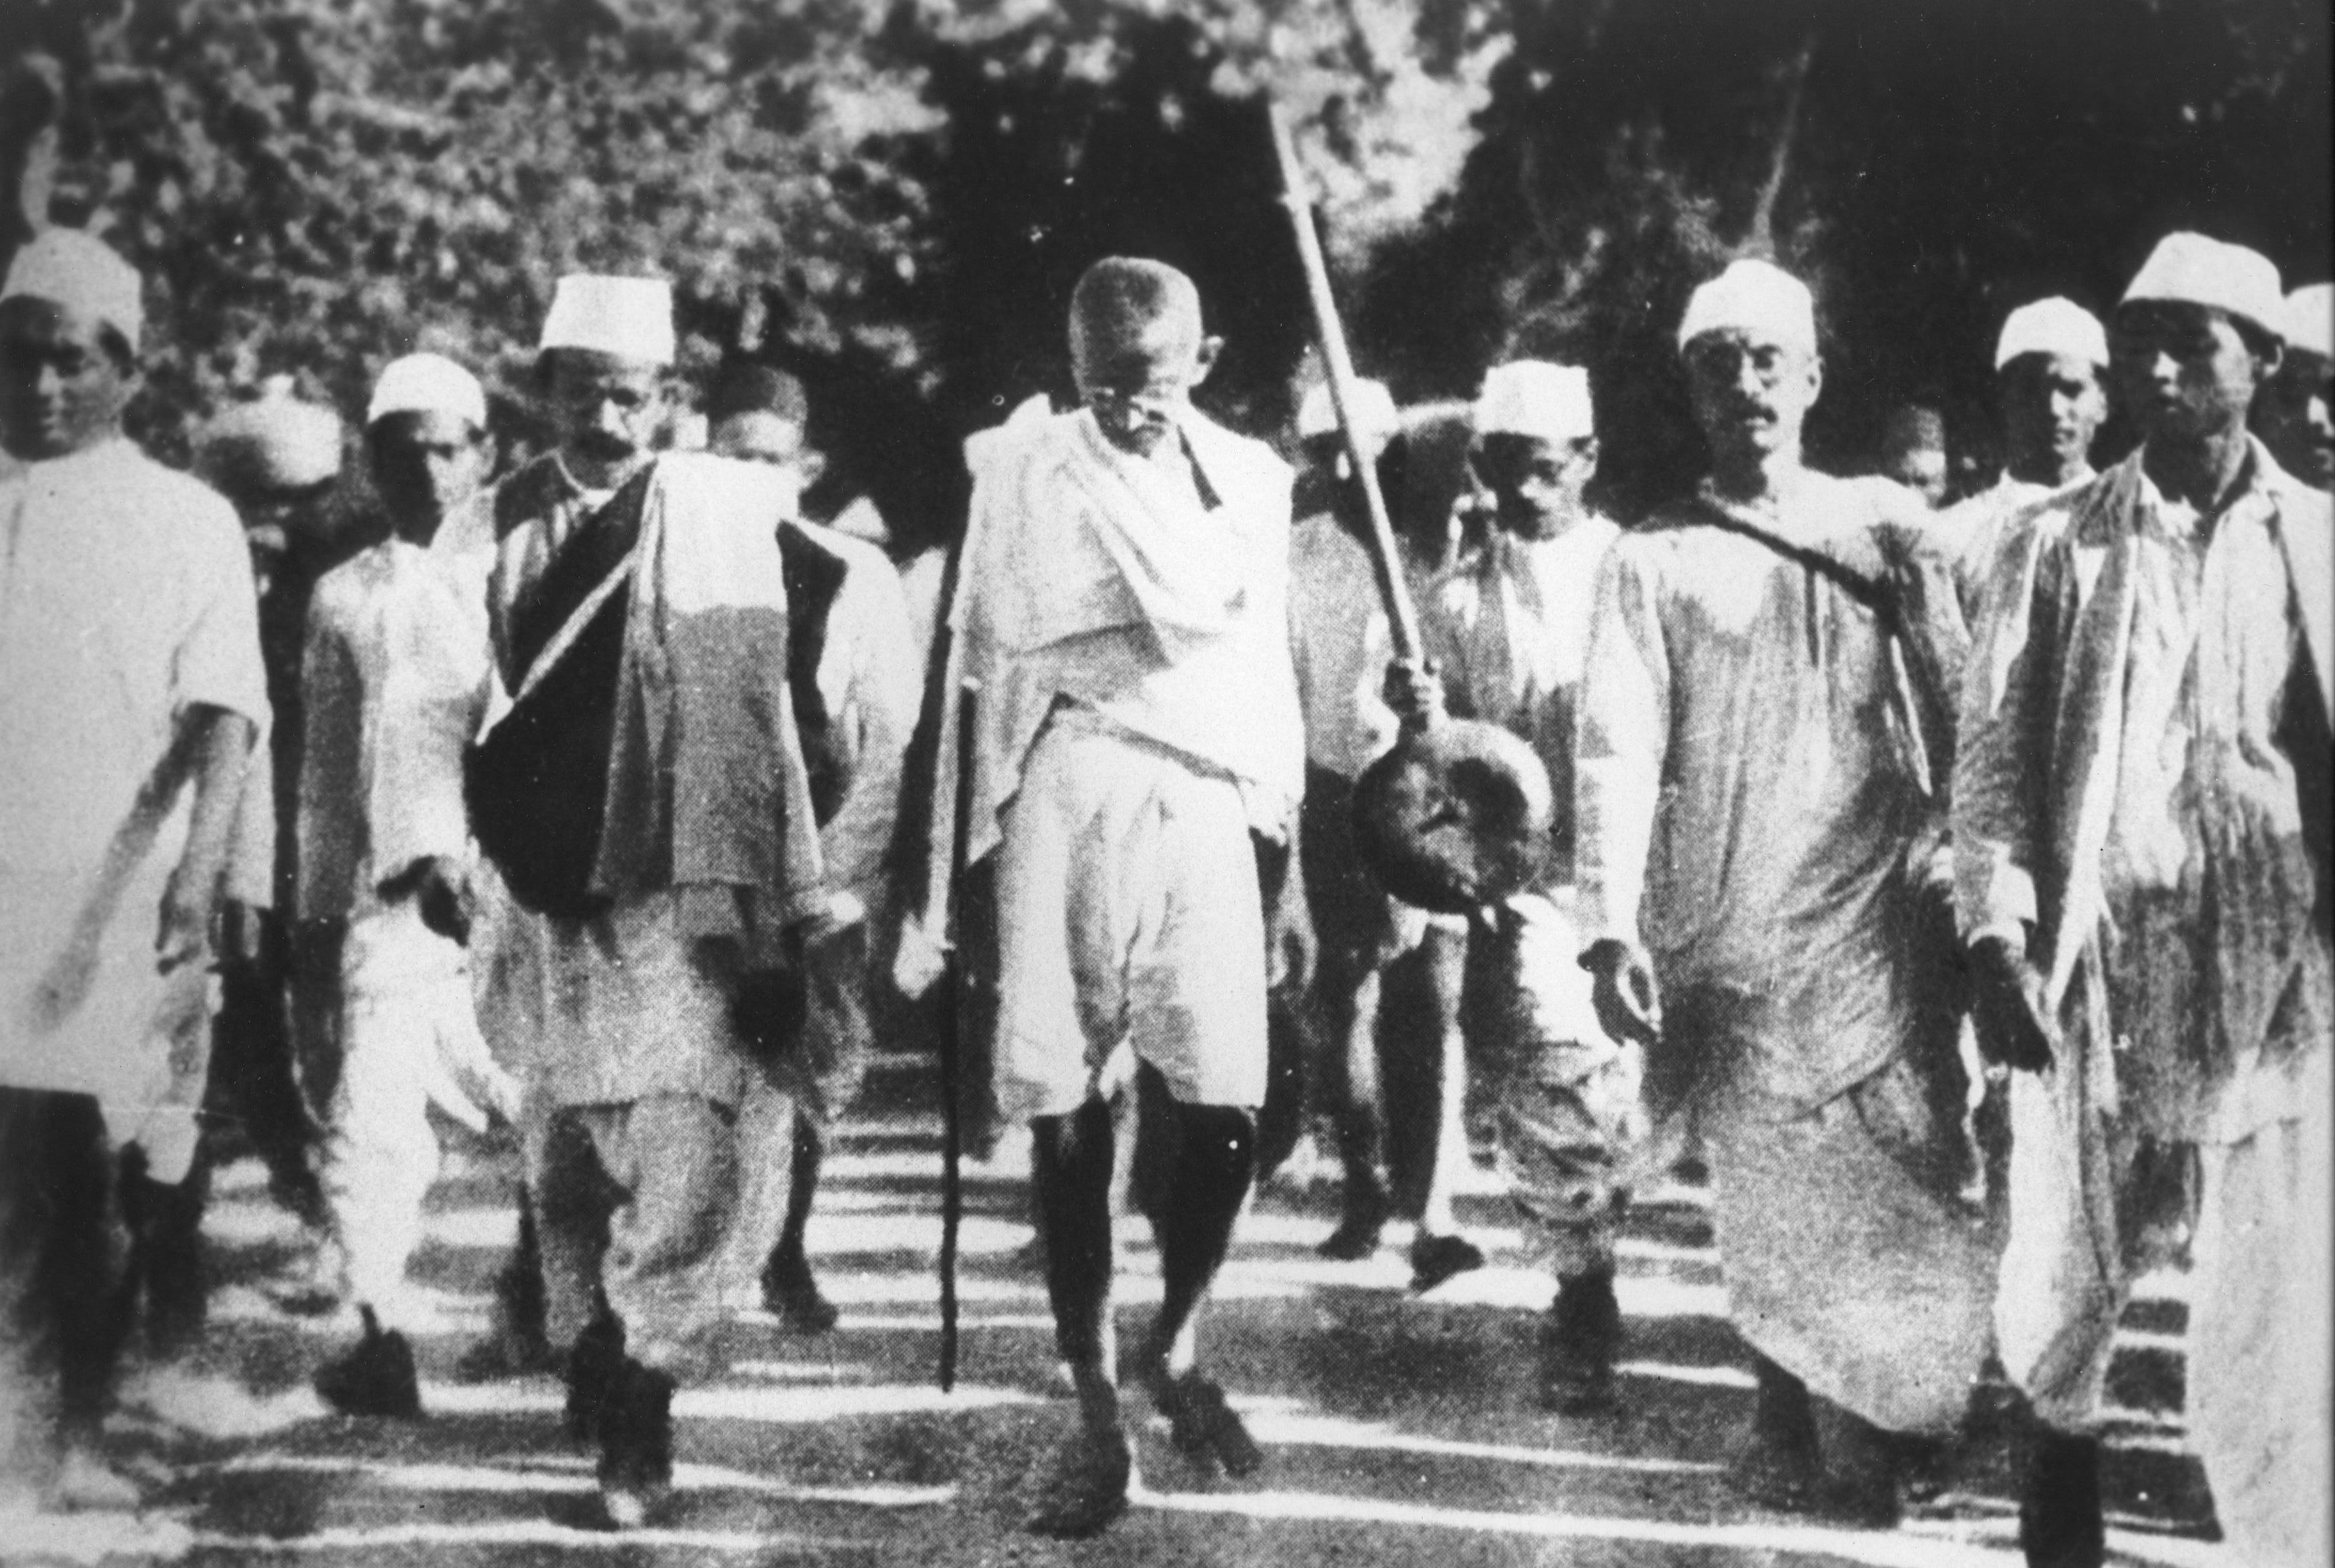 Gandhi during the Salt March, March 1930.  Photographer unknown.